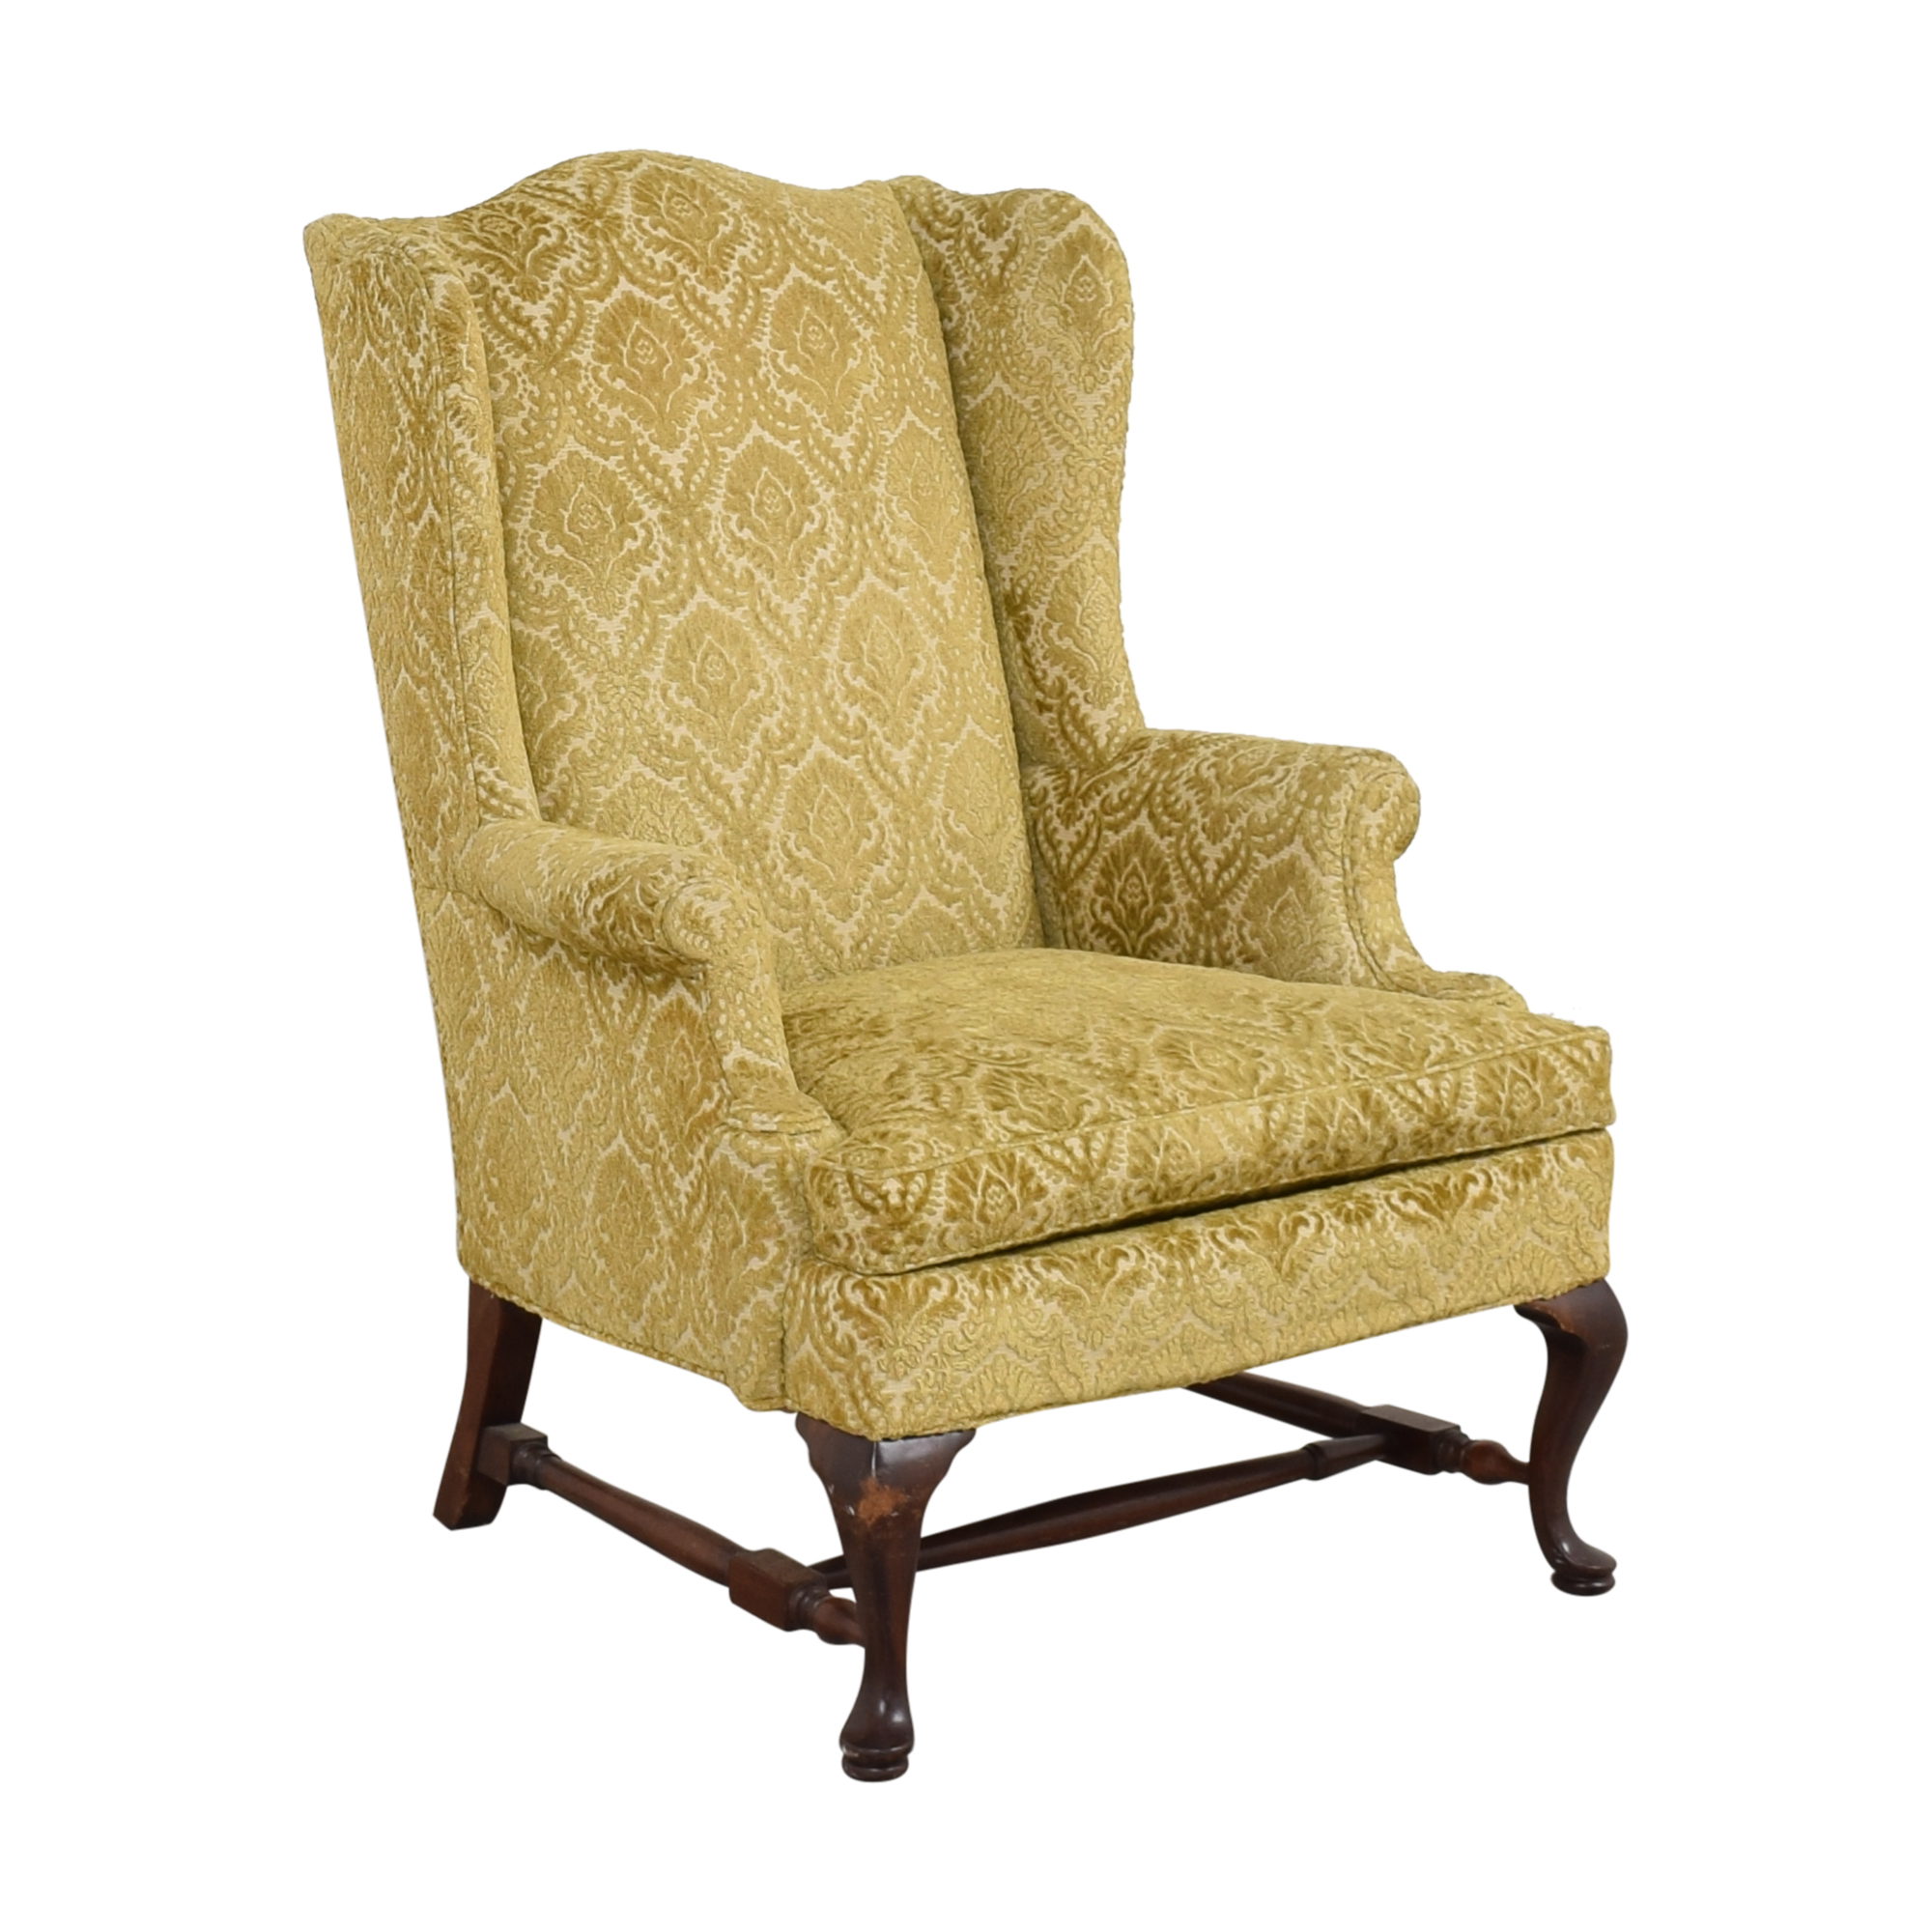 Hickory Chair Queen Anne Wing Back Chair / Accent Chairs